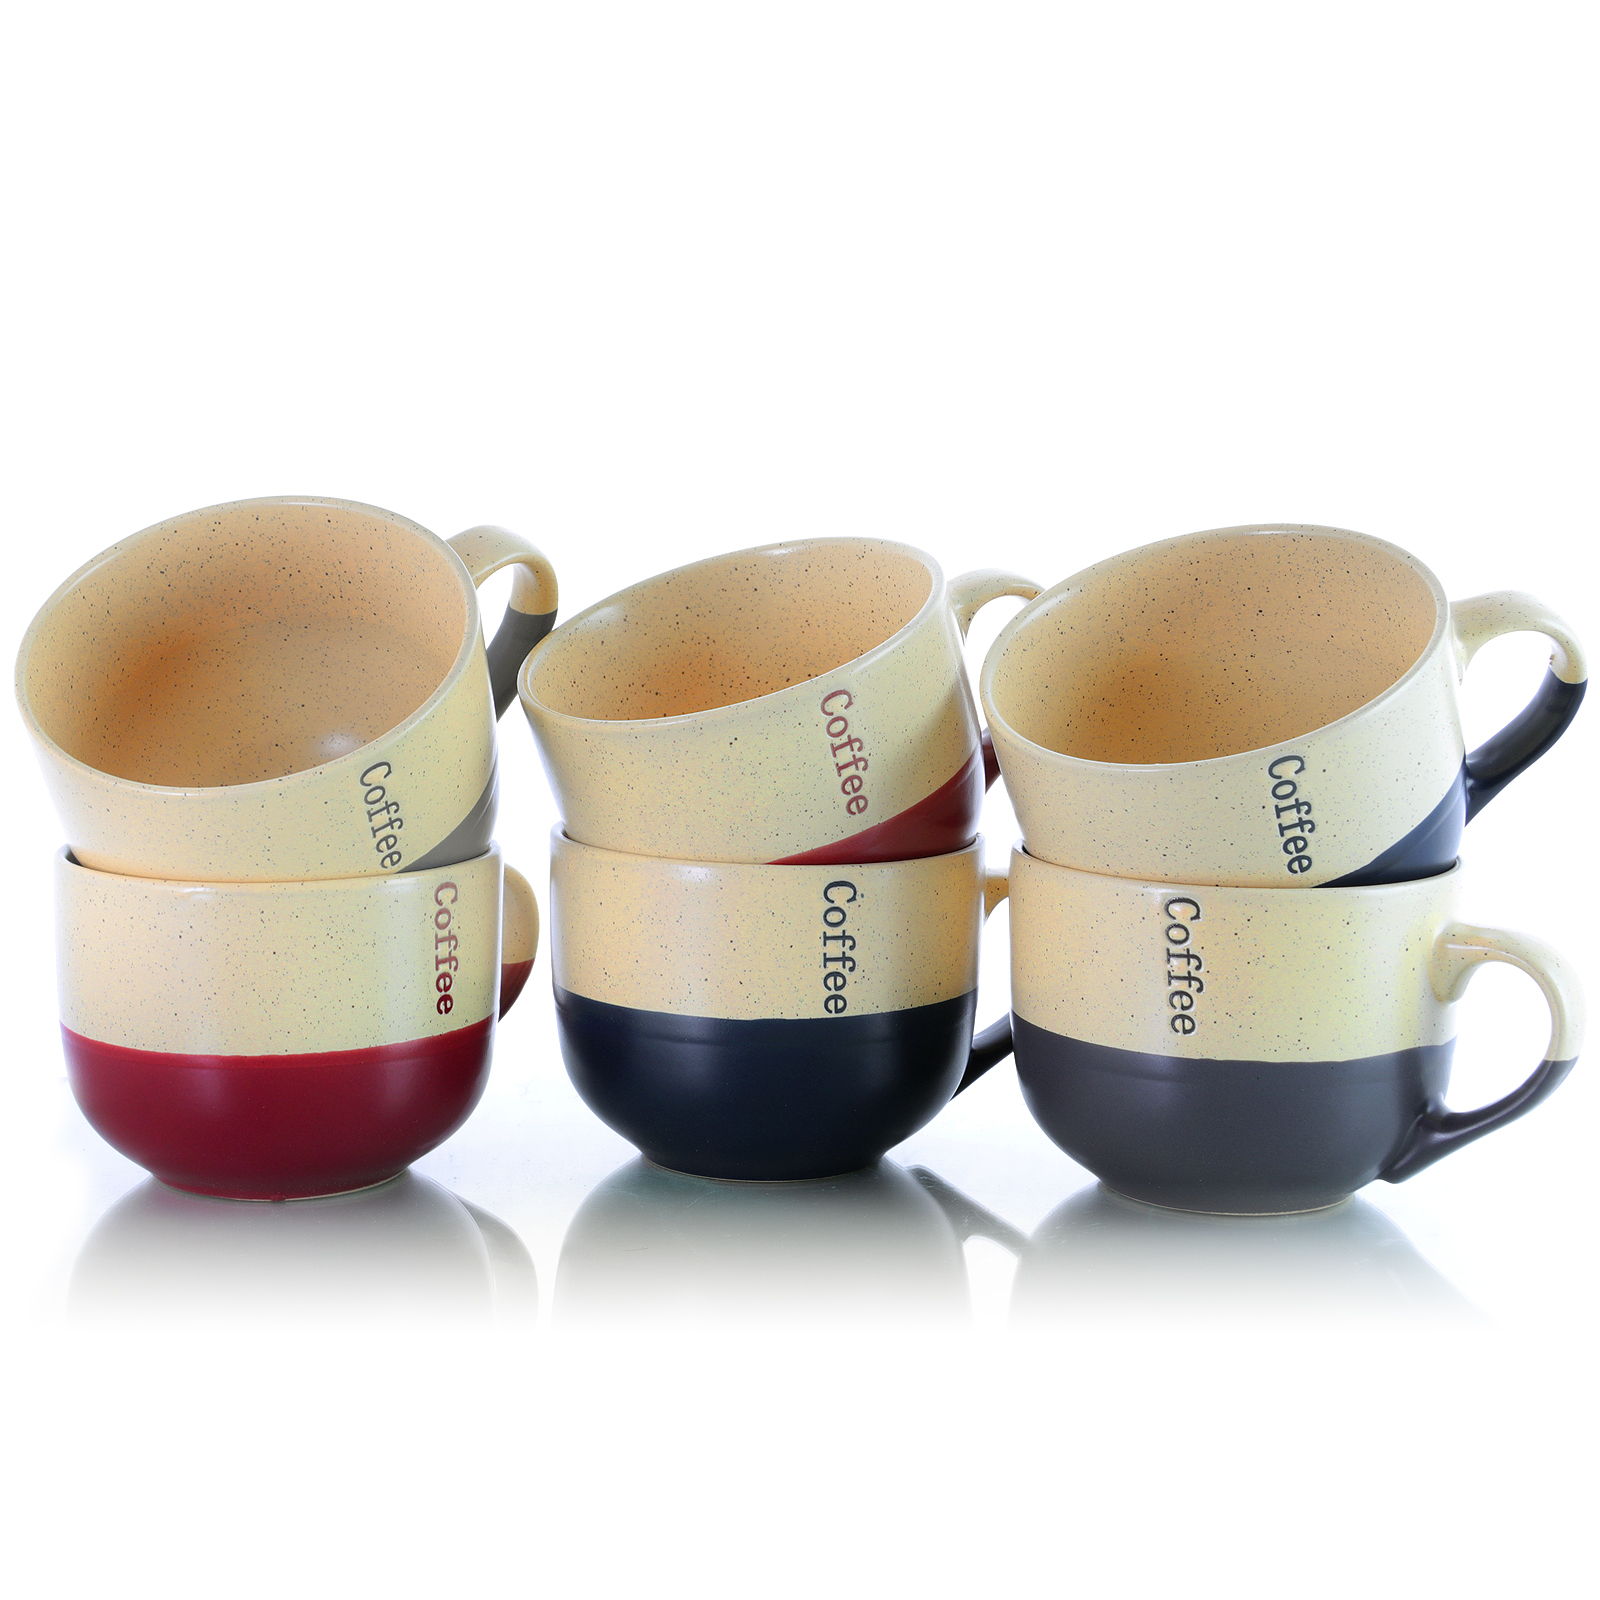 Elama's Latte Cafe Gift Cups 6 Piece Set of 18 oz Large Mugs for Latte, Coffee and Tea